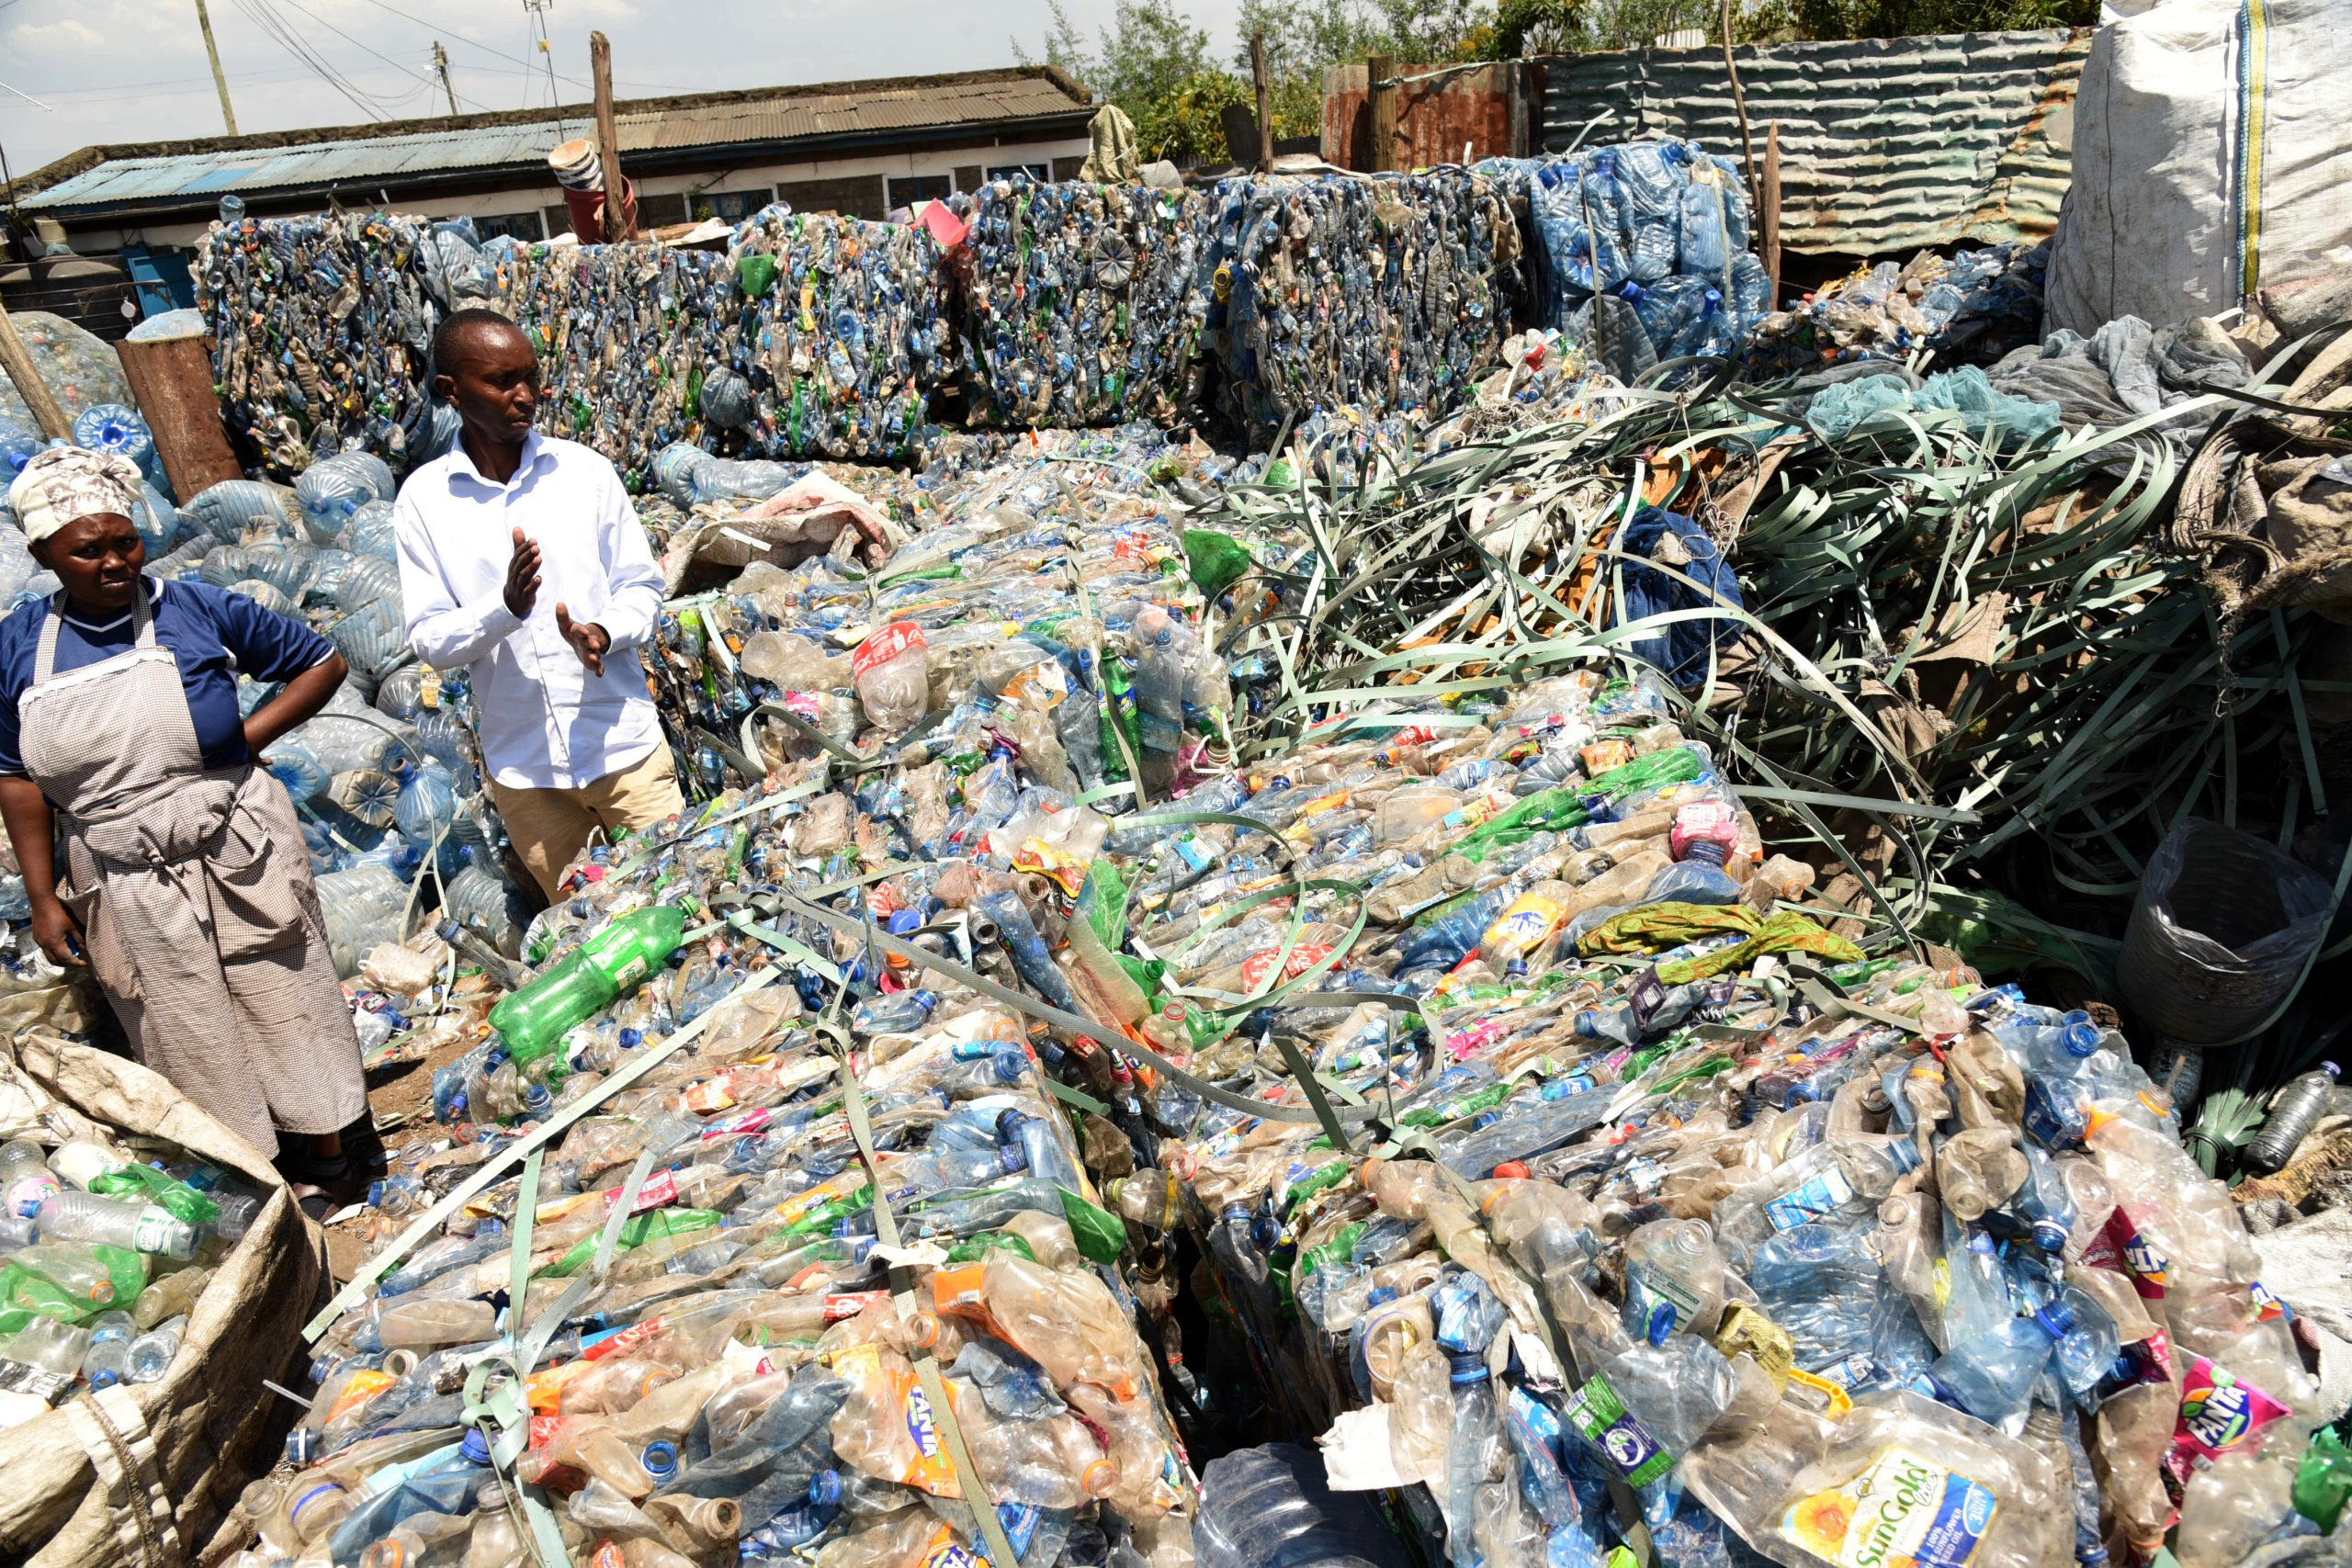 Statement on US-Kenya Trade Deal Involving Big Plastics